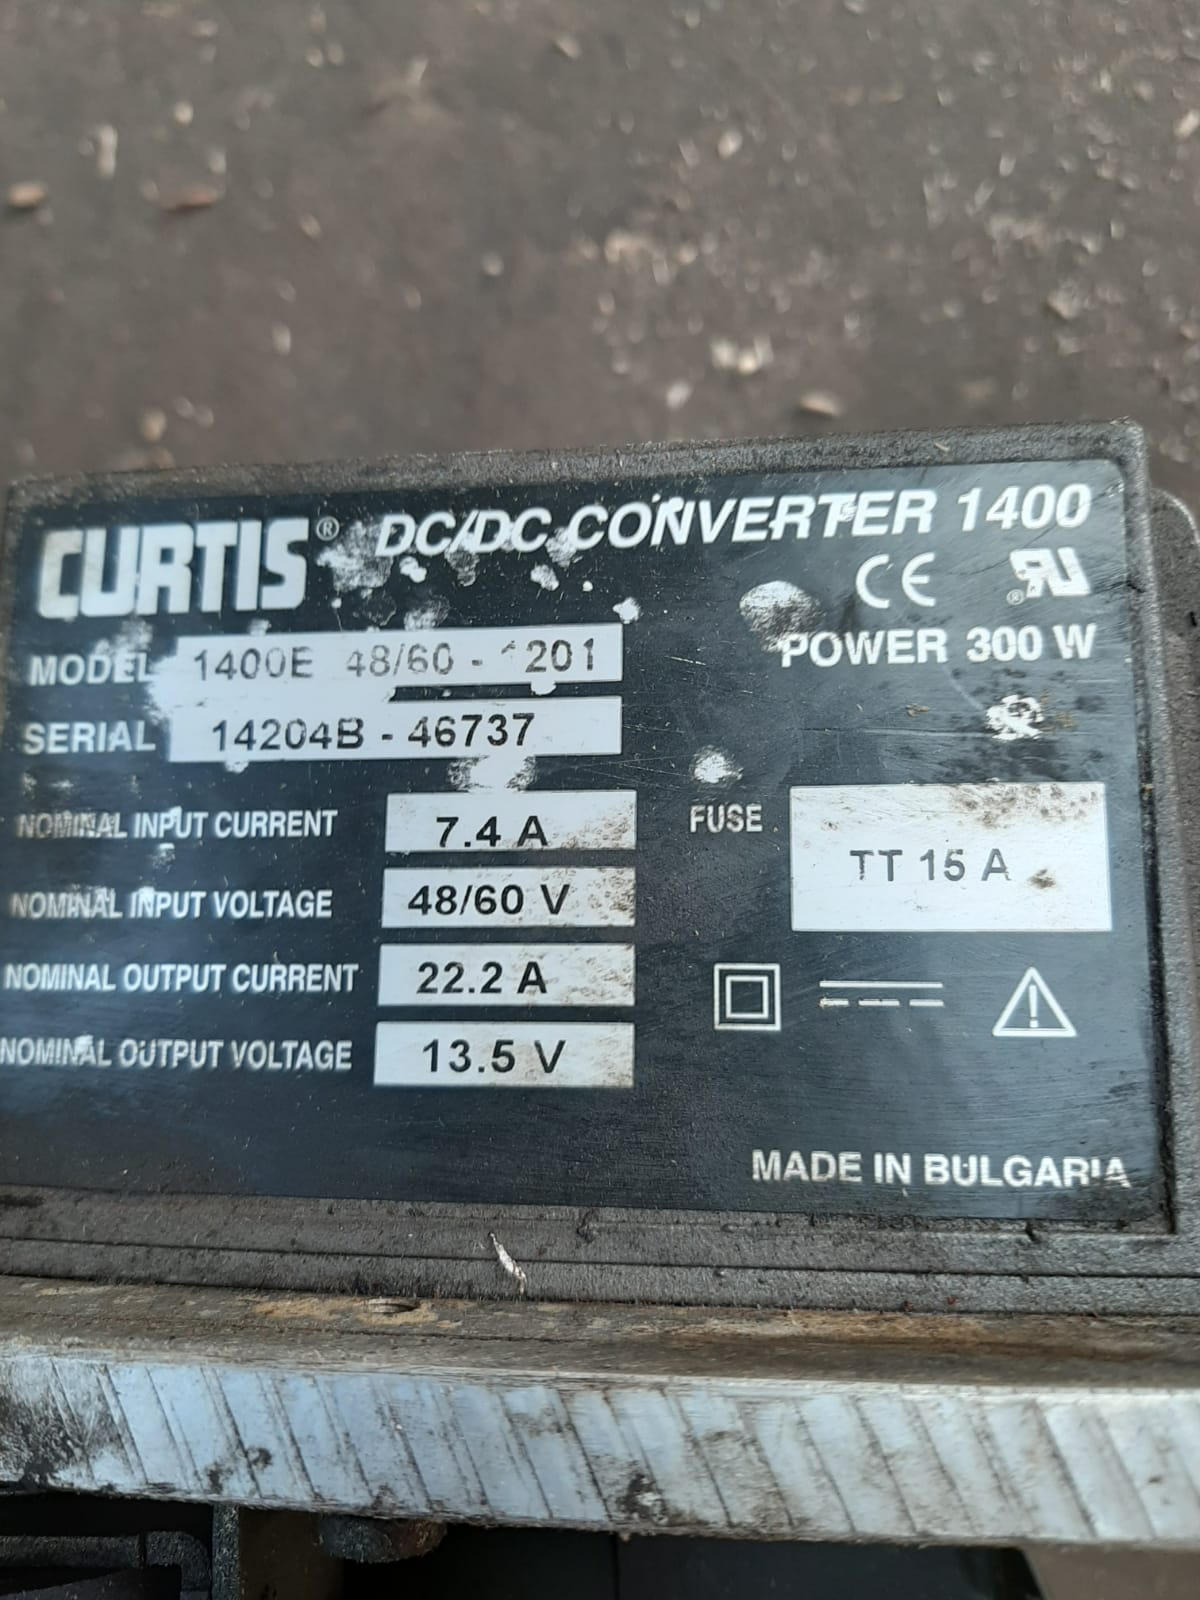 AISLE MASTER WH20E 2014 ELECTRIC FORK TRUCK POWER BOARD CURTIS BOARD WITH INVERTER *NO VAT* - Image 4 of 6